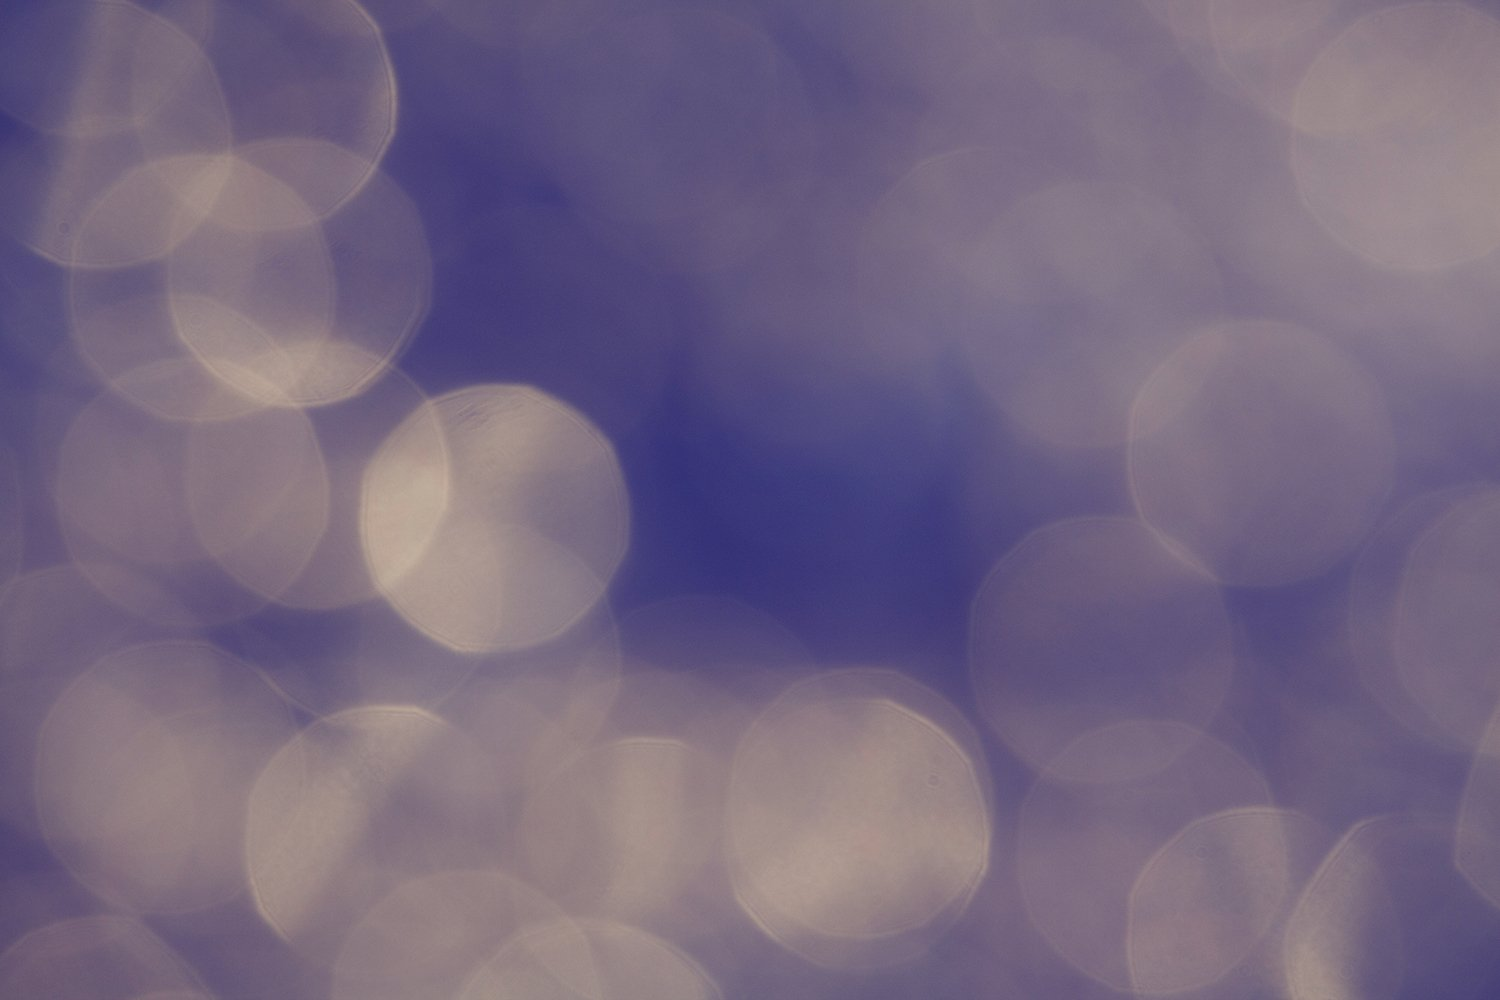 Festive abstract background, colorful bokeh example image 4